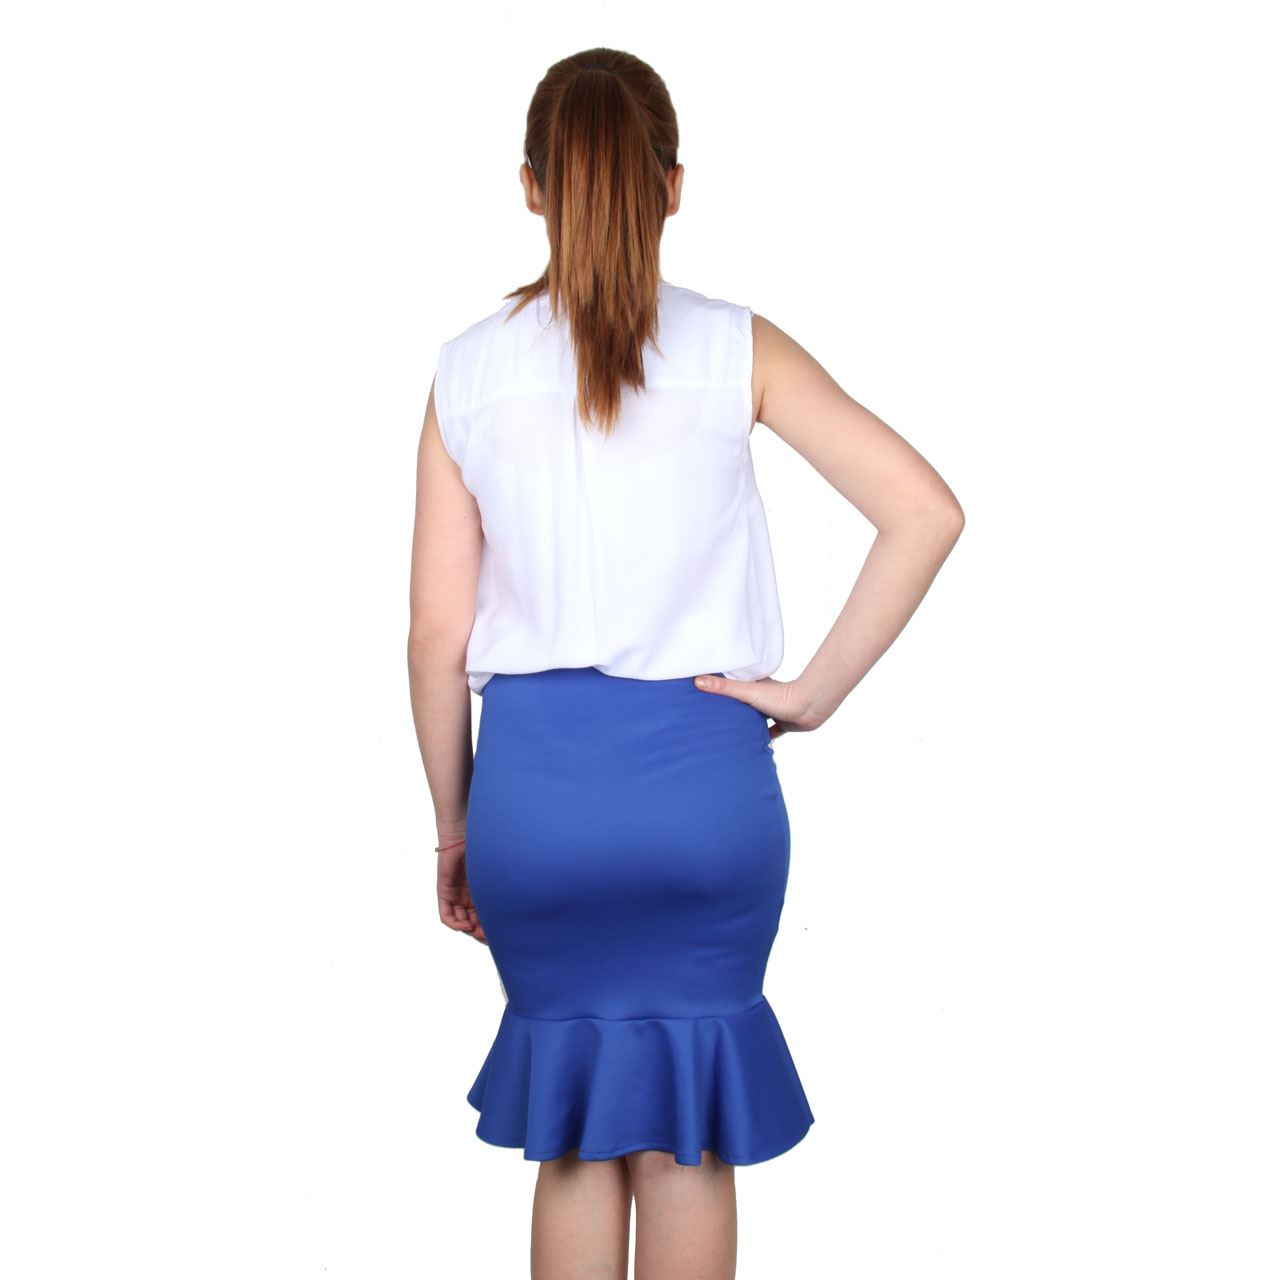 Discover pencil skirts at ASOS. From bodycon to tube skirts, shop your favourite colours and styles. The streamline pencil skirt remains an elegant classic.